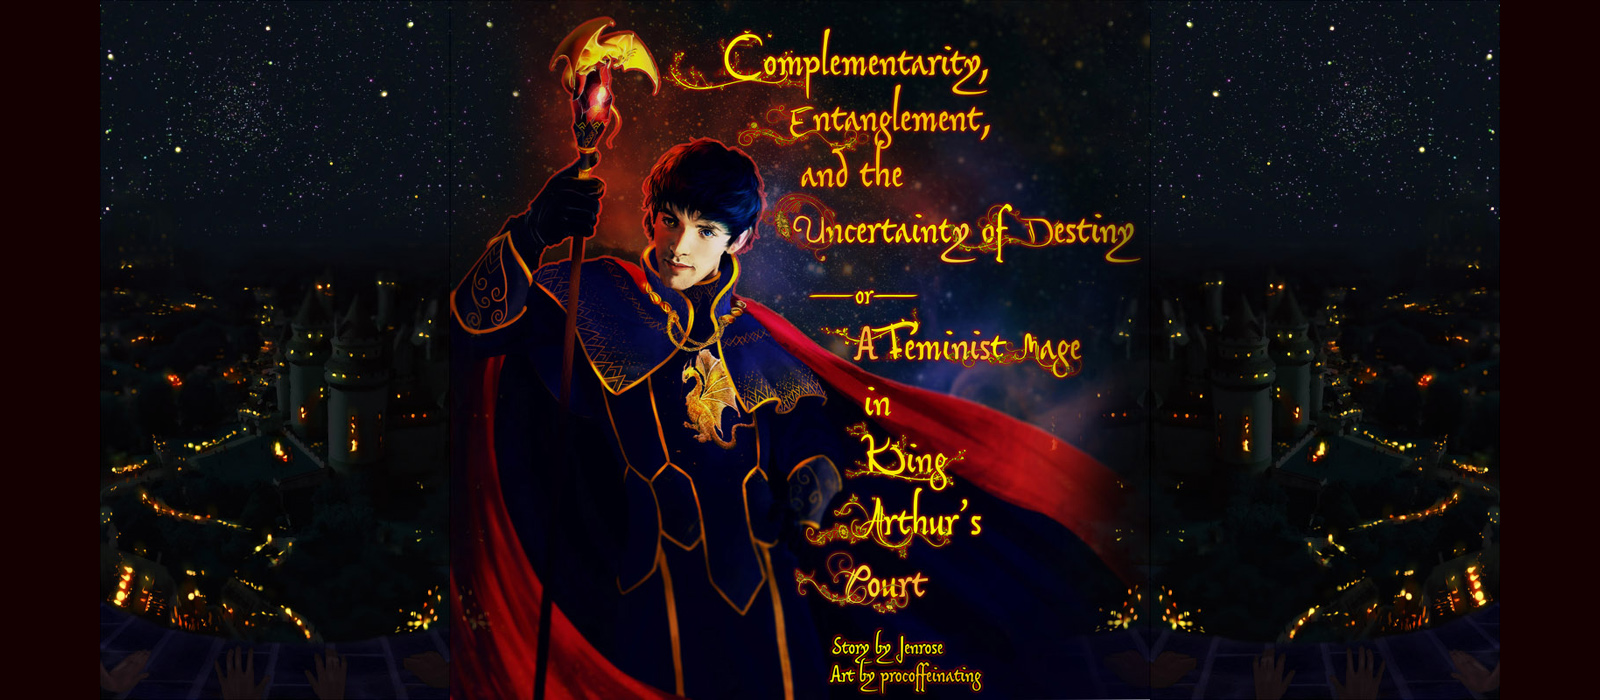 A powerful Merlin stands in fine garb, with the Pendragon dragon on his deep blue velvet coat. A flowing red cape swirls around him, and in his hand is a glowing staff with a red gem and a gold dragon on top. The title of the fanfic is rendered in a variety of ornate fonts, with leaves and flowers and feathers growing out from the text. The text is shimmering gold and well-coordinated to the trim of Merlin's clothes. To the sides, we see Camelot at night, laid out behind him, as seen from high above, looking down from a tower. The background is very dark, with the starry sky blending almost imperceptibly with the festival lights of Camelot at night.